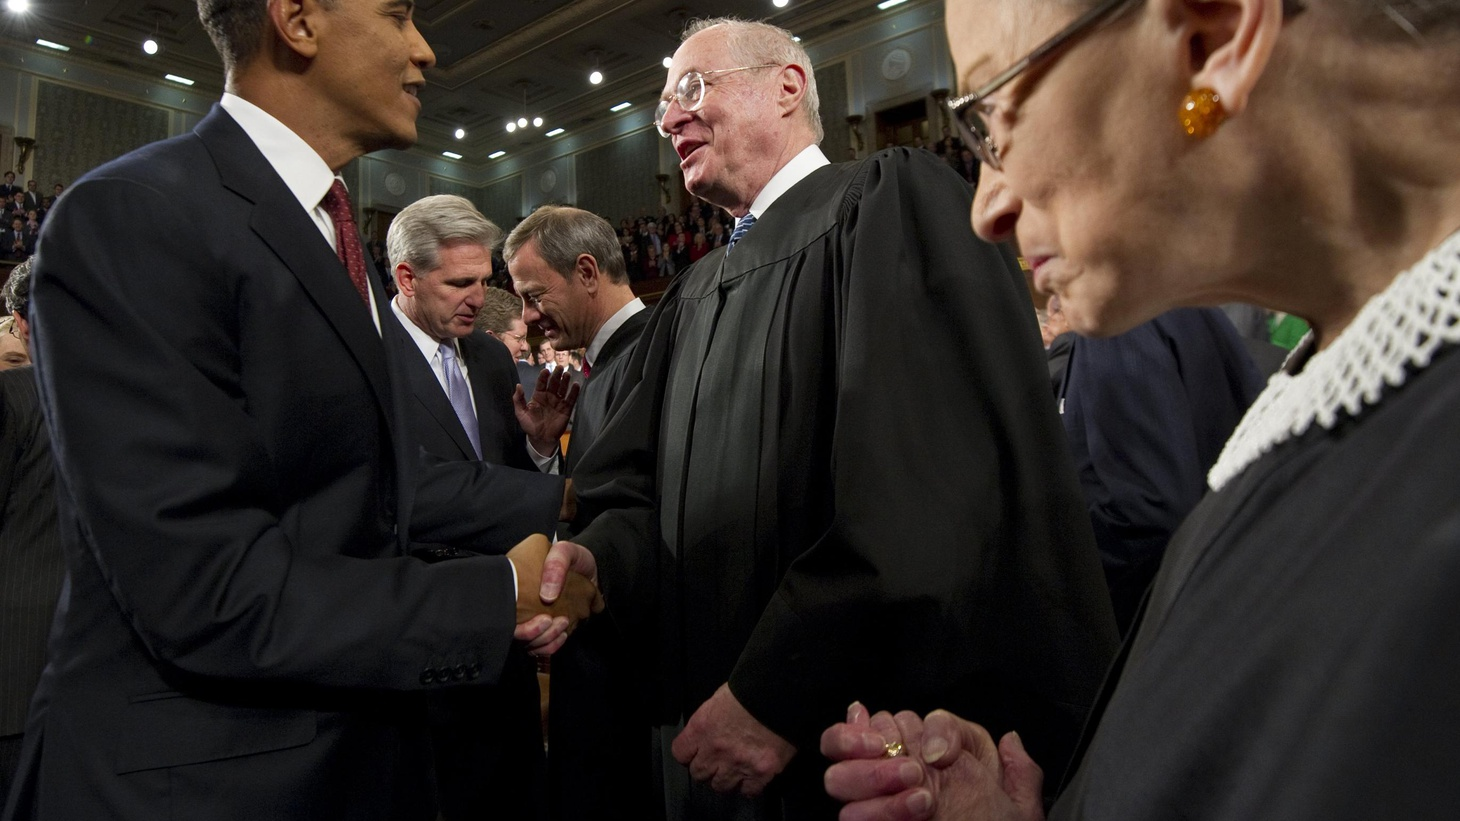 The Supreme Court is about to decide if President Obama's healthcare reform is constitutional. Will liberals and conservatives split and let Justice Kennedy make the call?